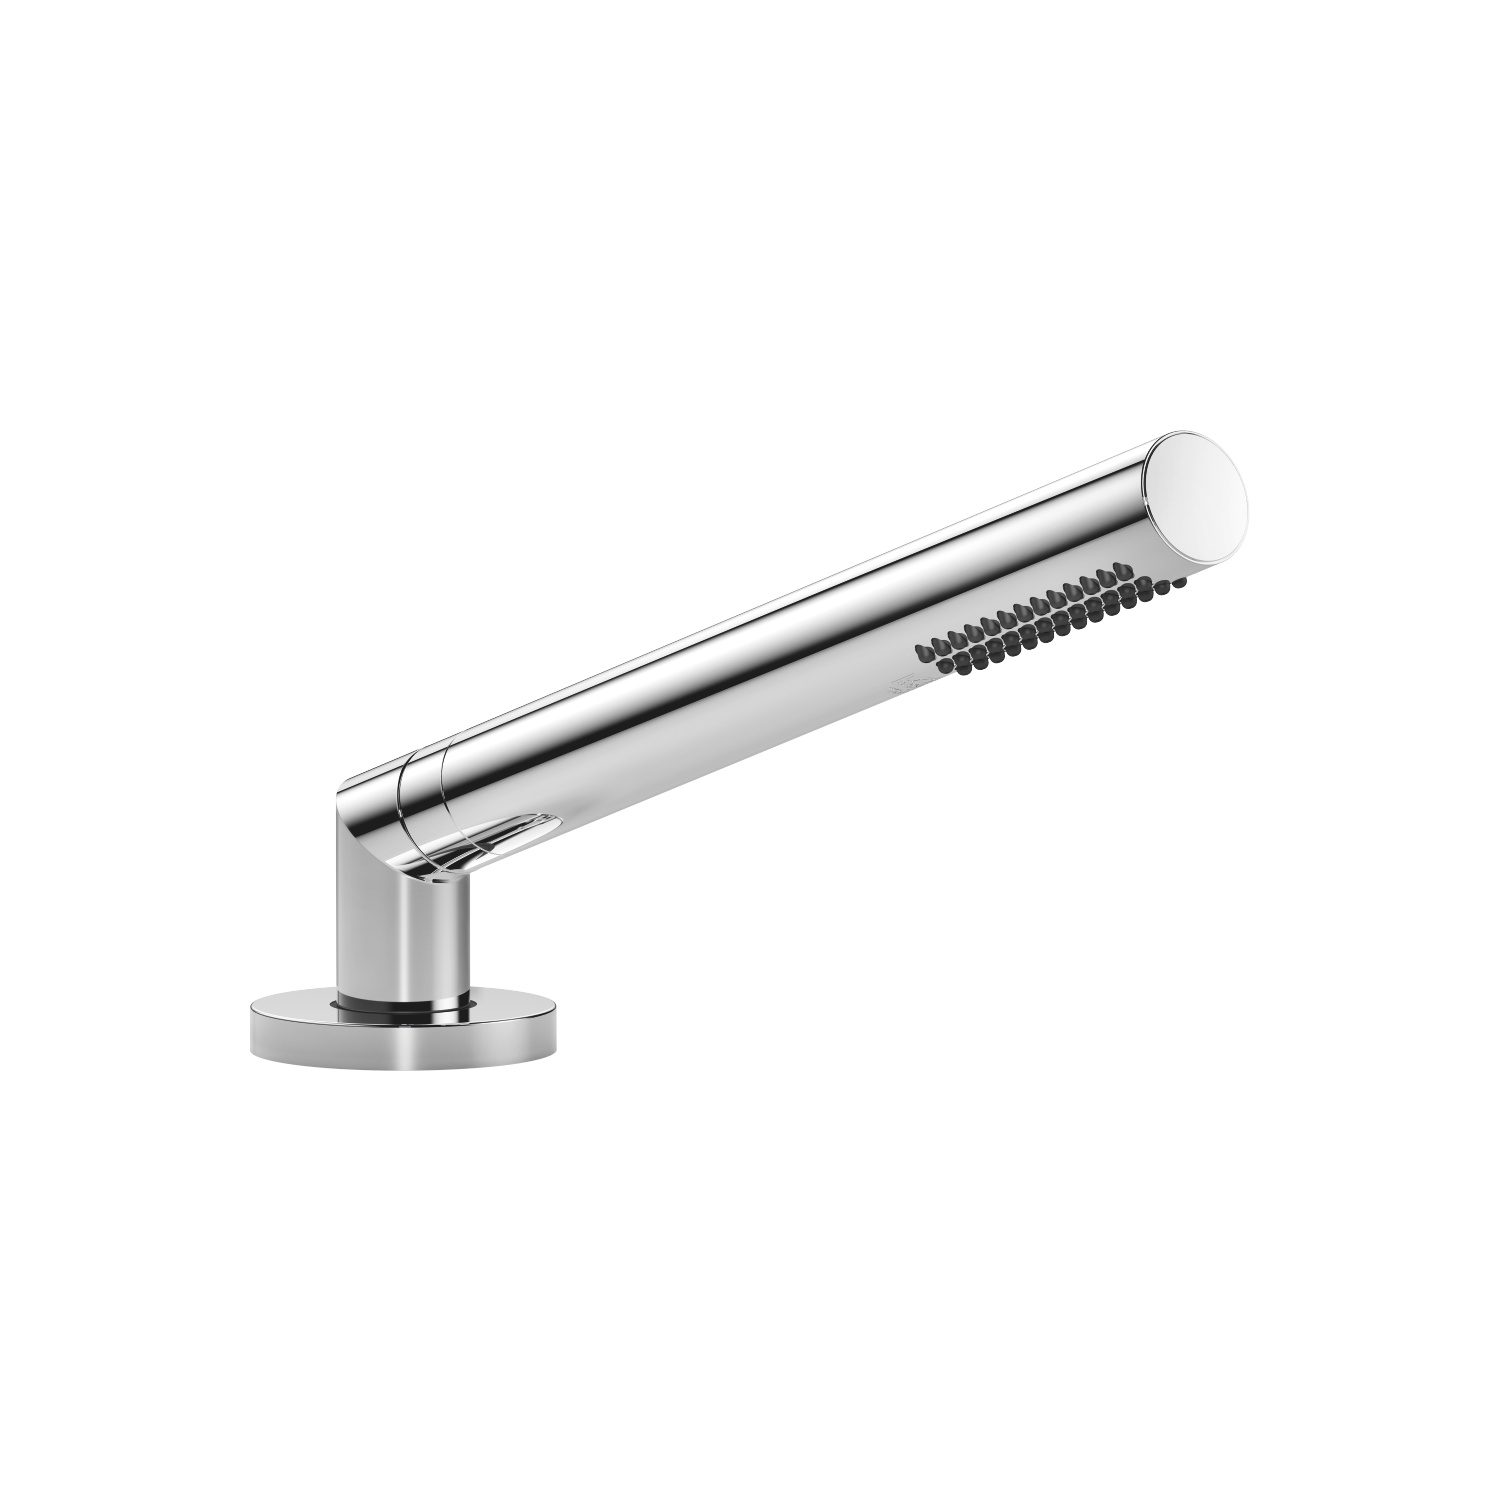 Hand shower set for deck-mounted tub installation - polished chrome